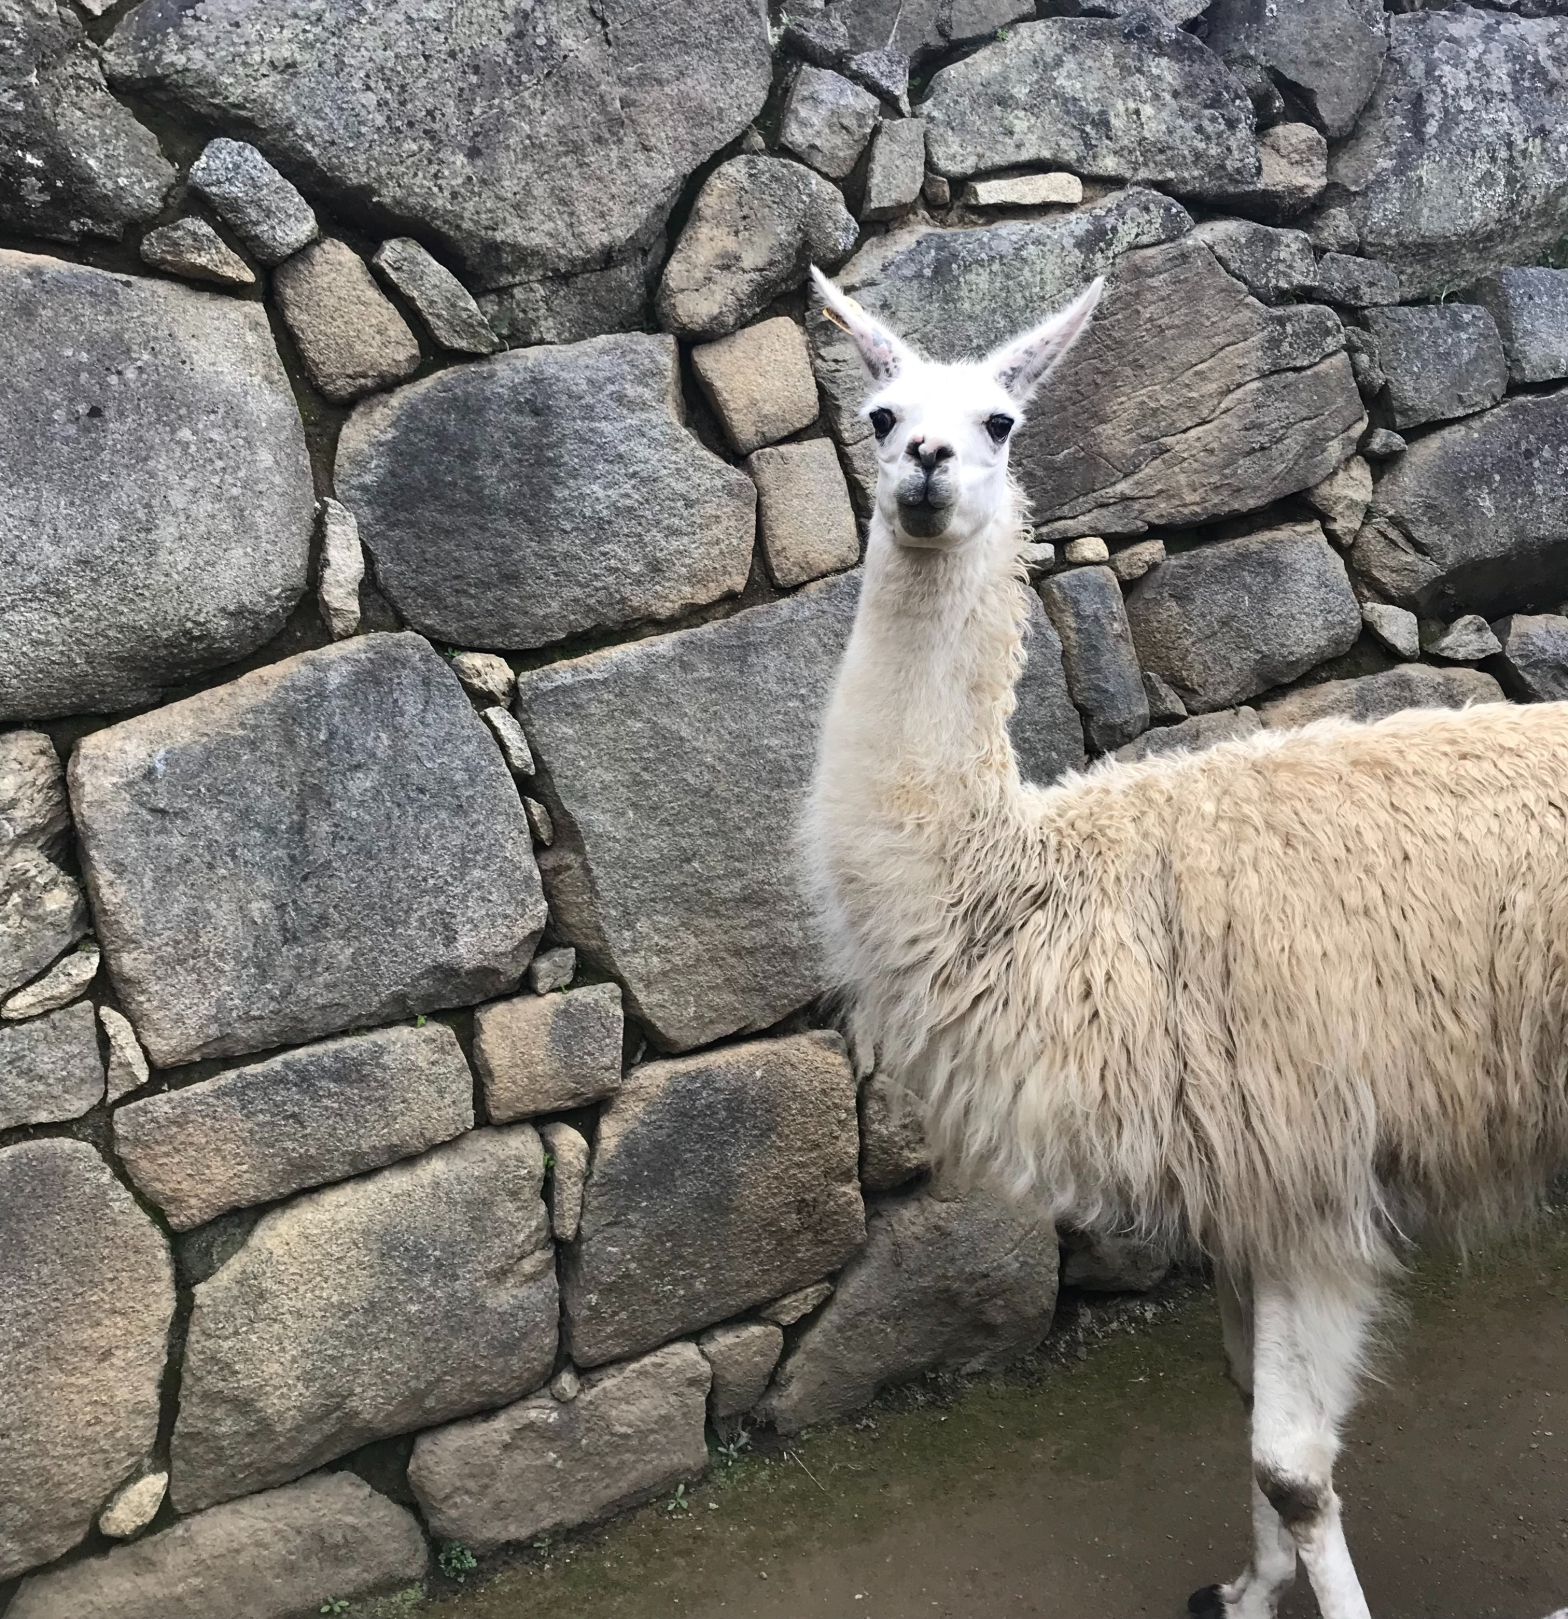 Image Description: Photo of a white llama against a grey stone background at Machu Picchu